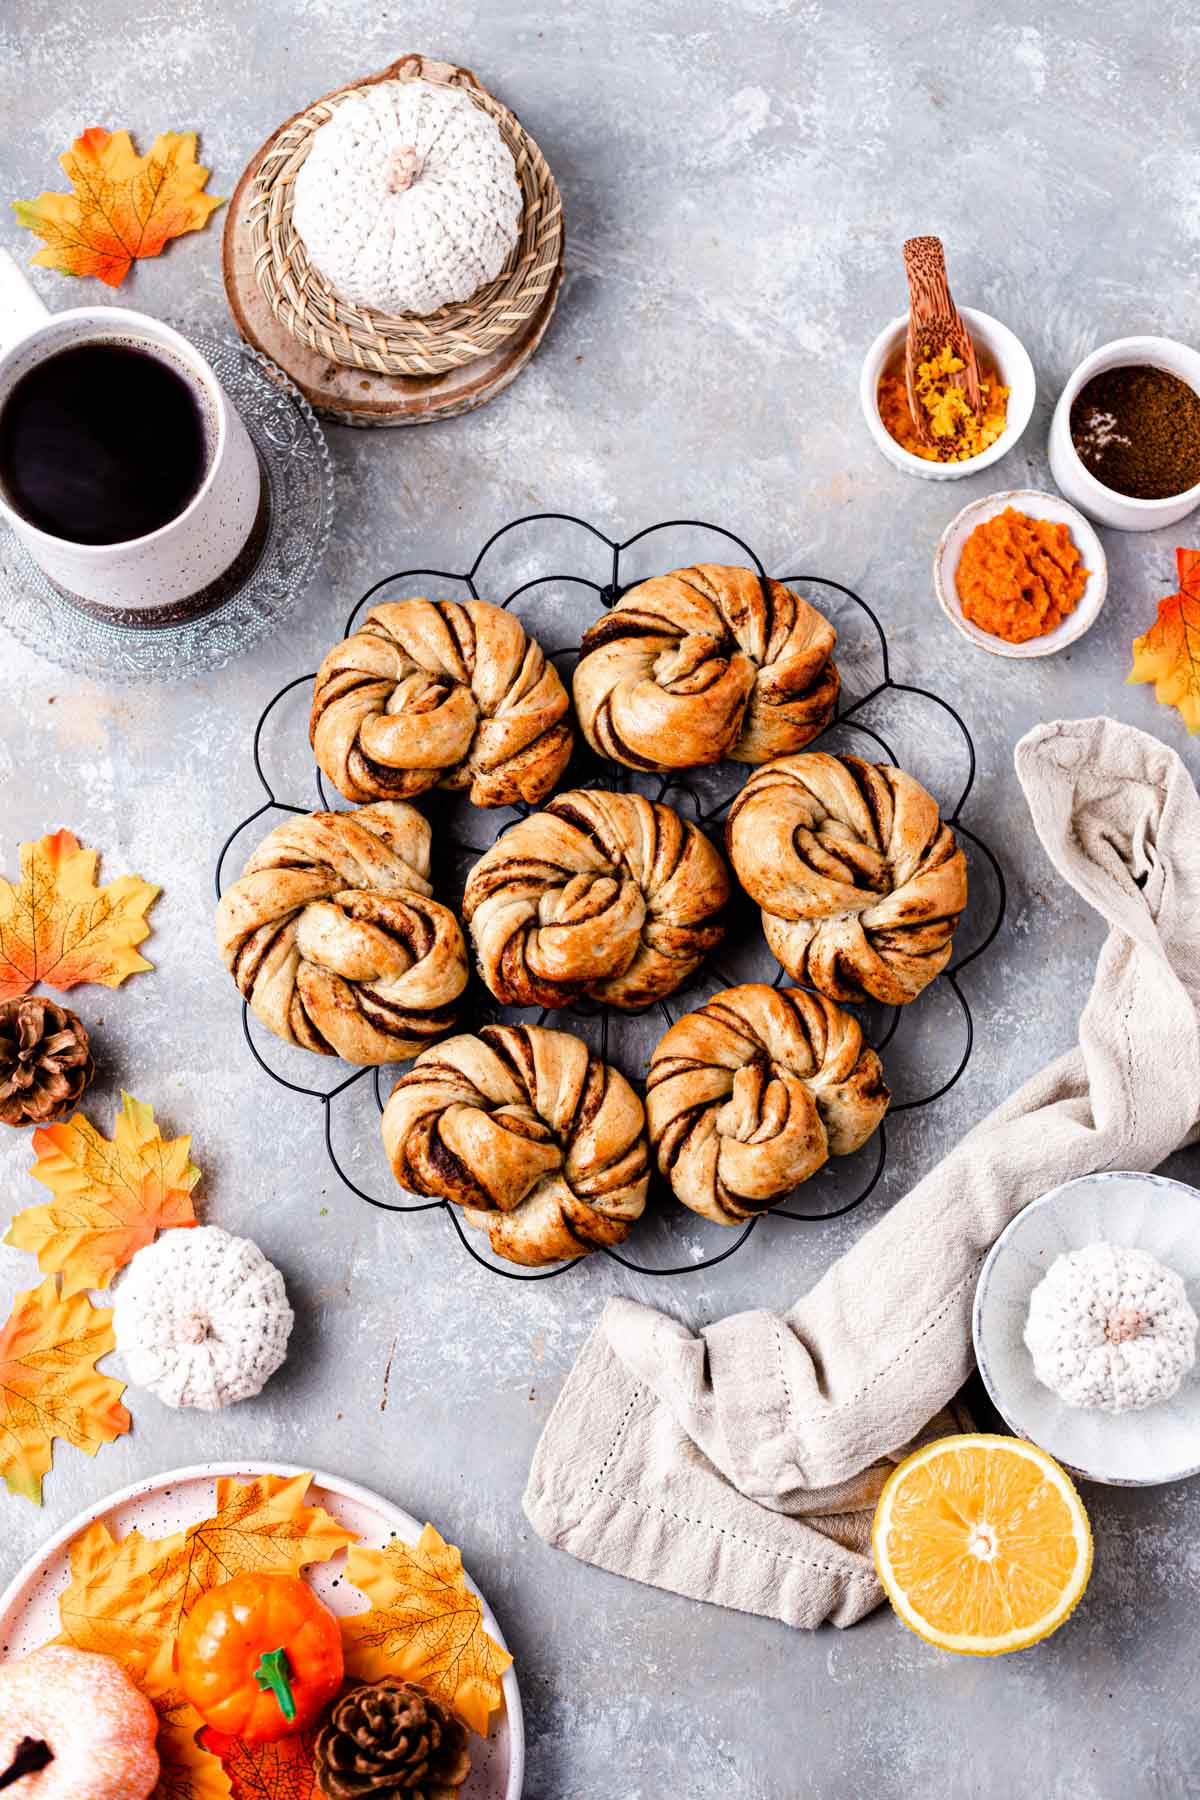 Seven pumpkin rolls placed on a round cooling rack and surrounded by orange leaves, coffee cup, pumpkin puree and more.